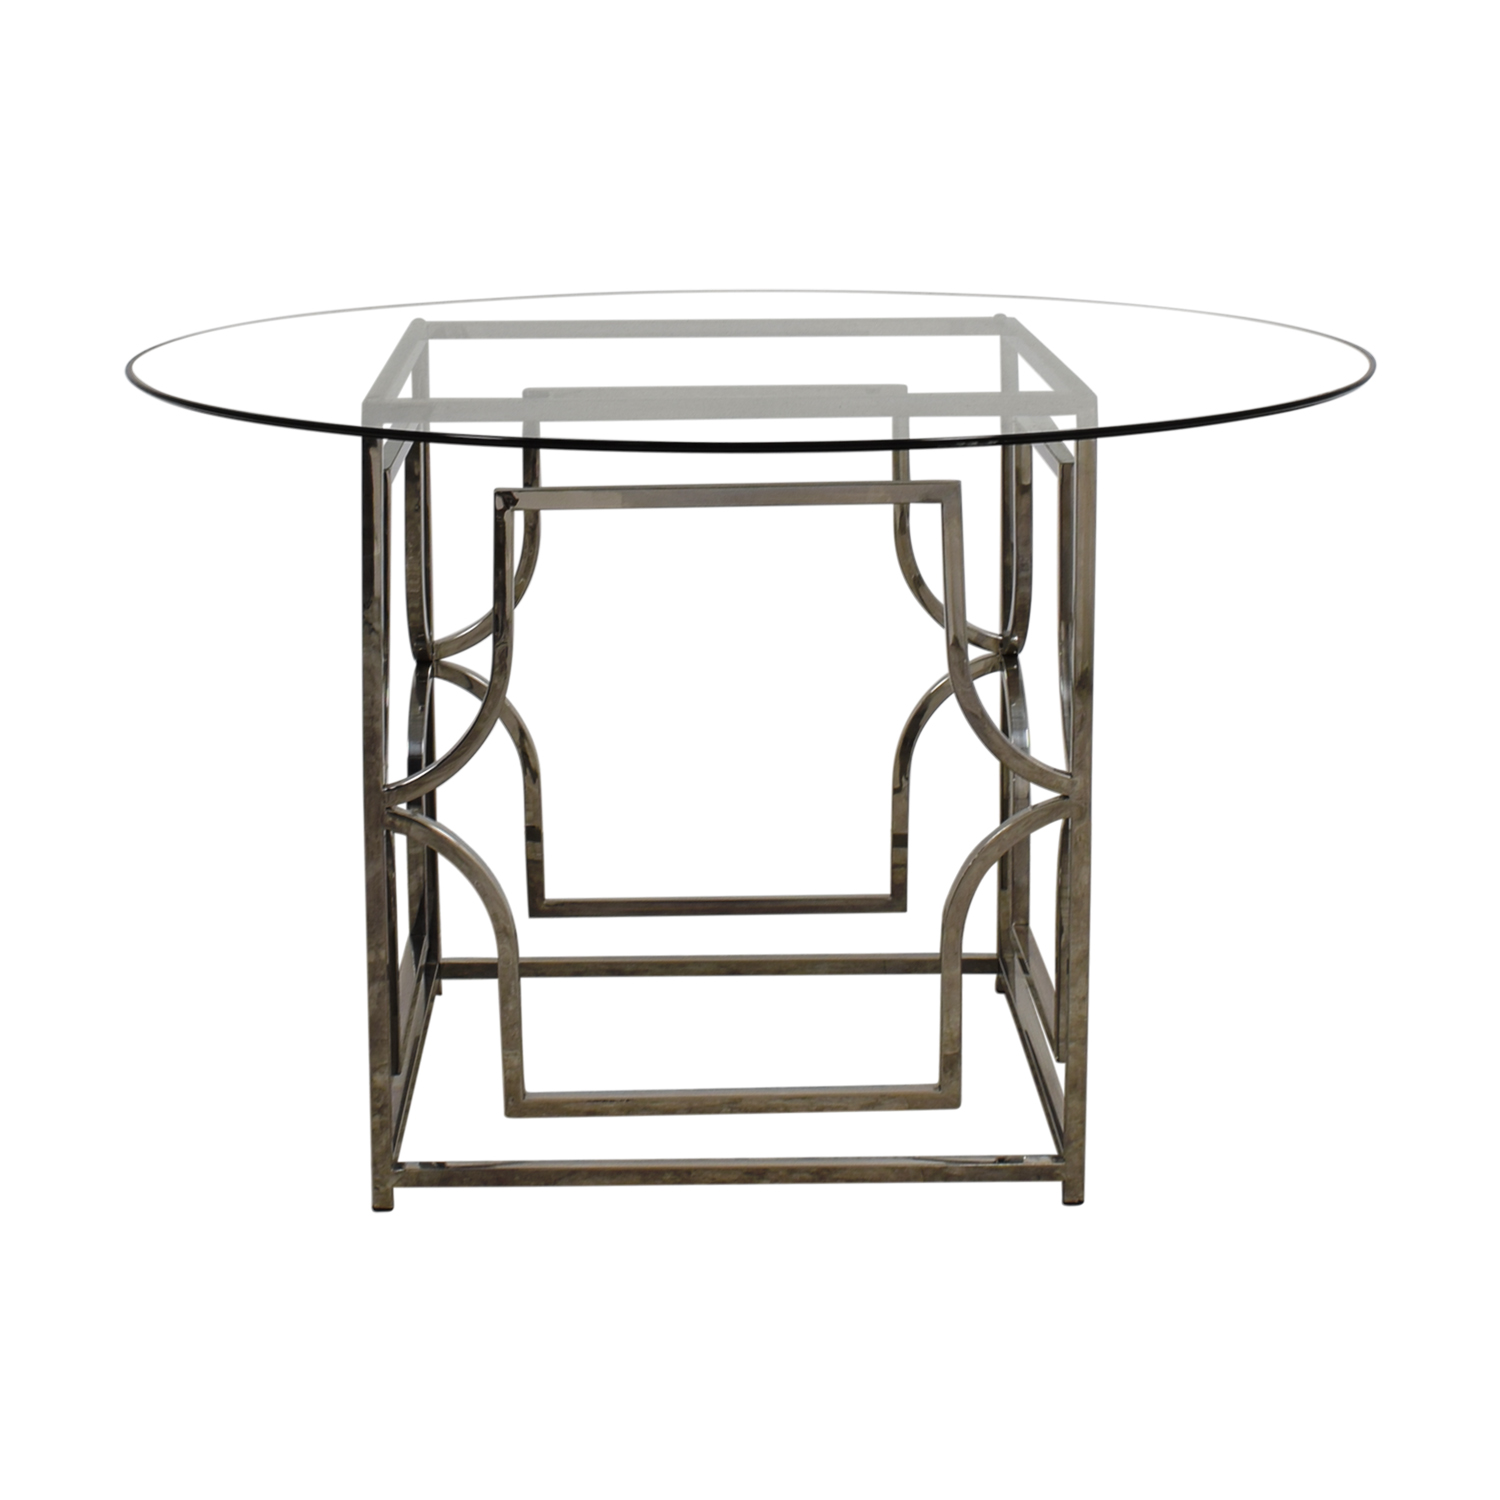 Z Gallerie Z Gallerie Abigail Round Glass and Chrome Dining Table